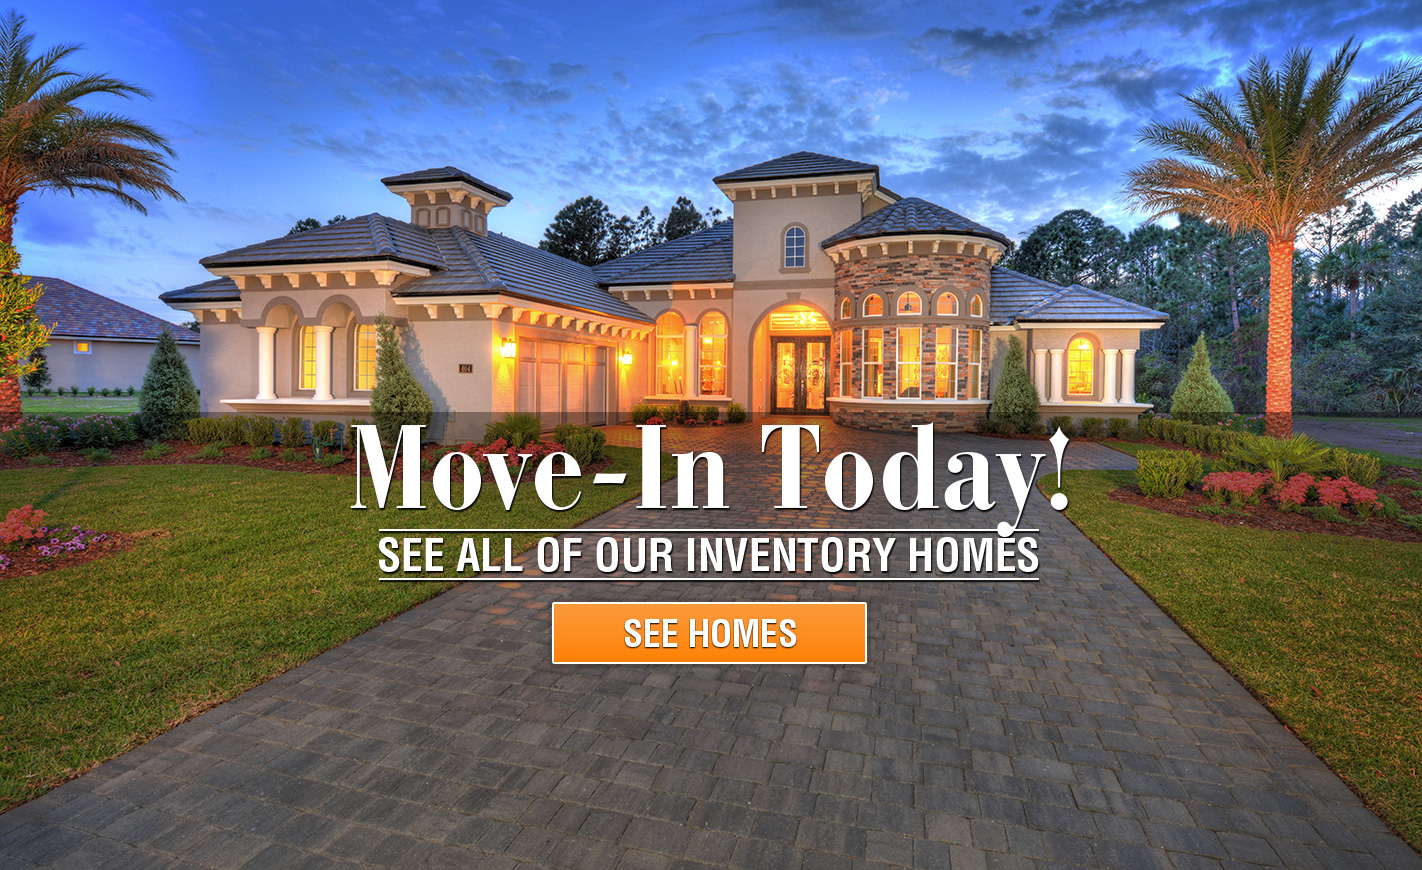 See All of Our Inventory Homes